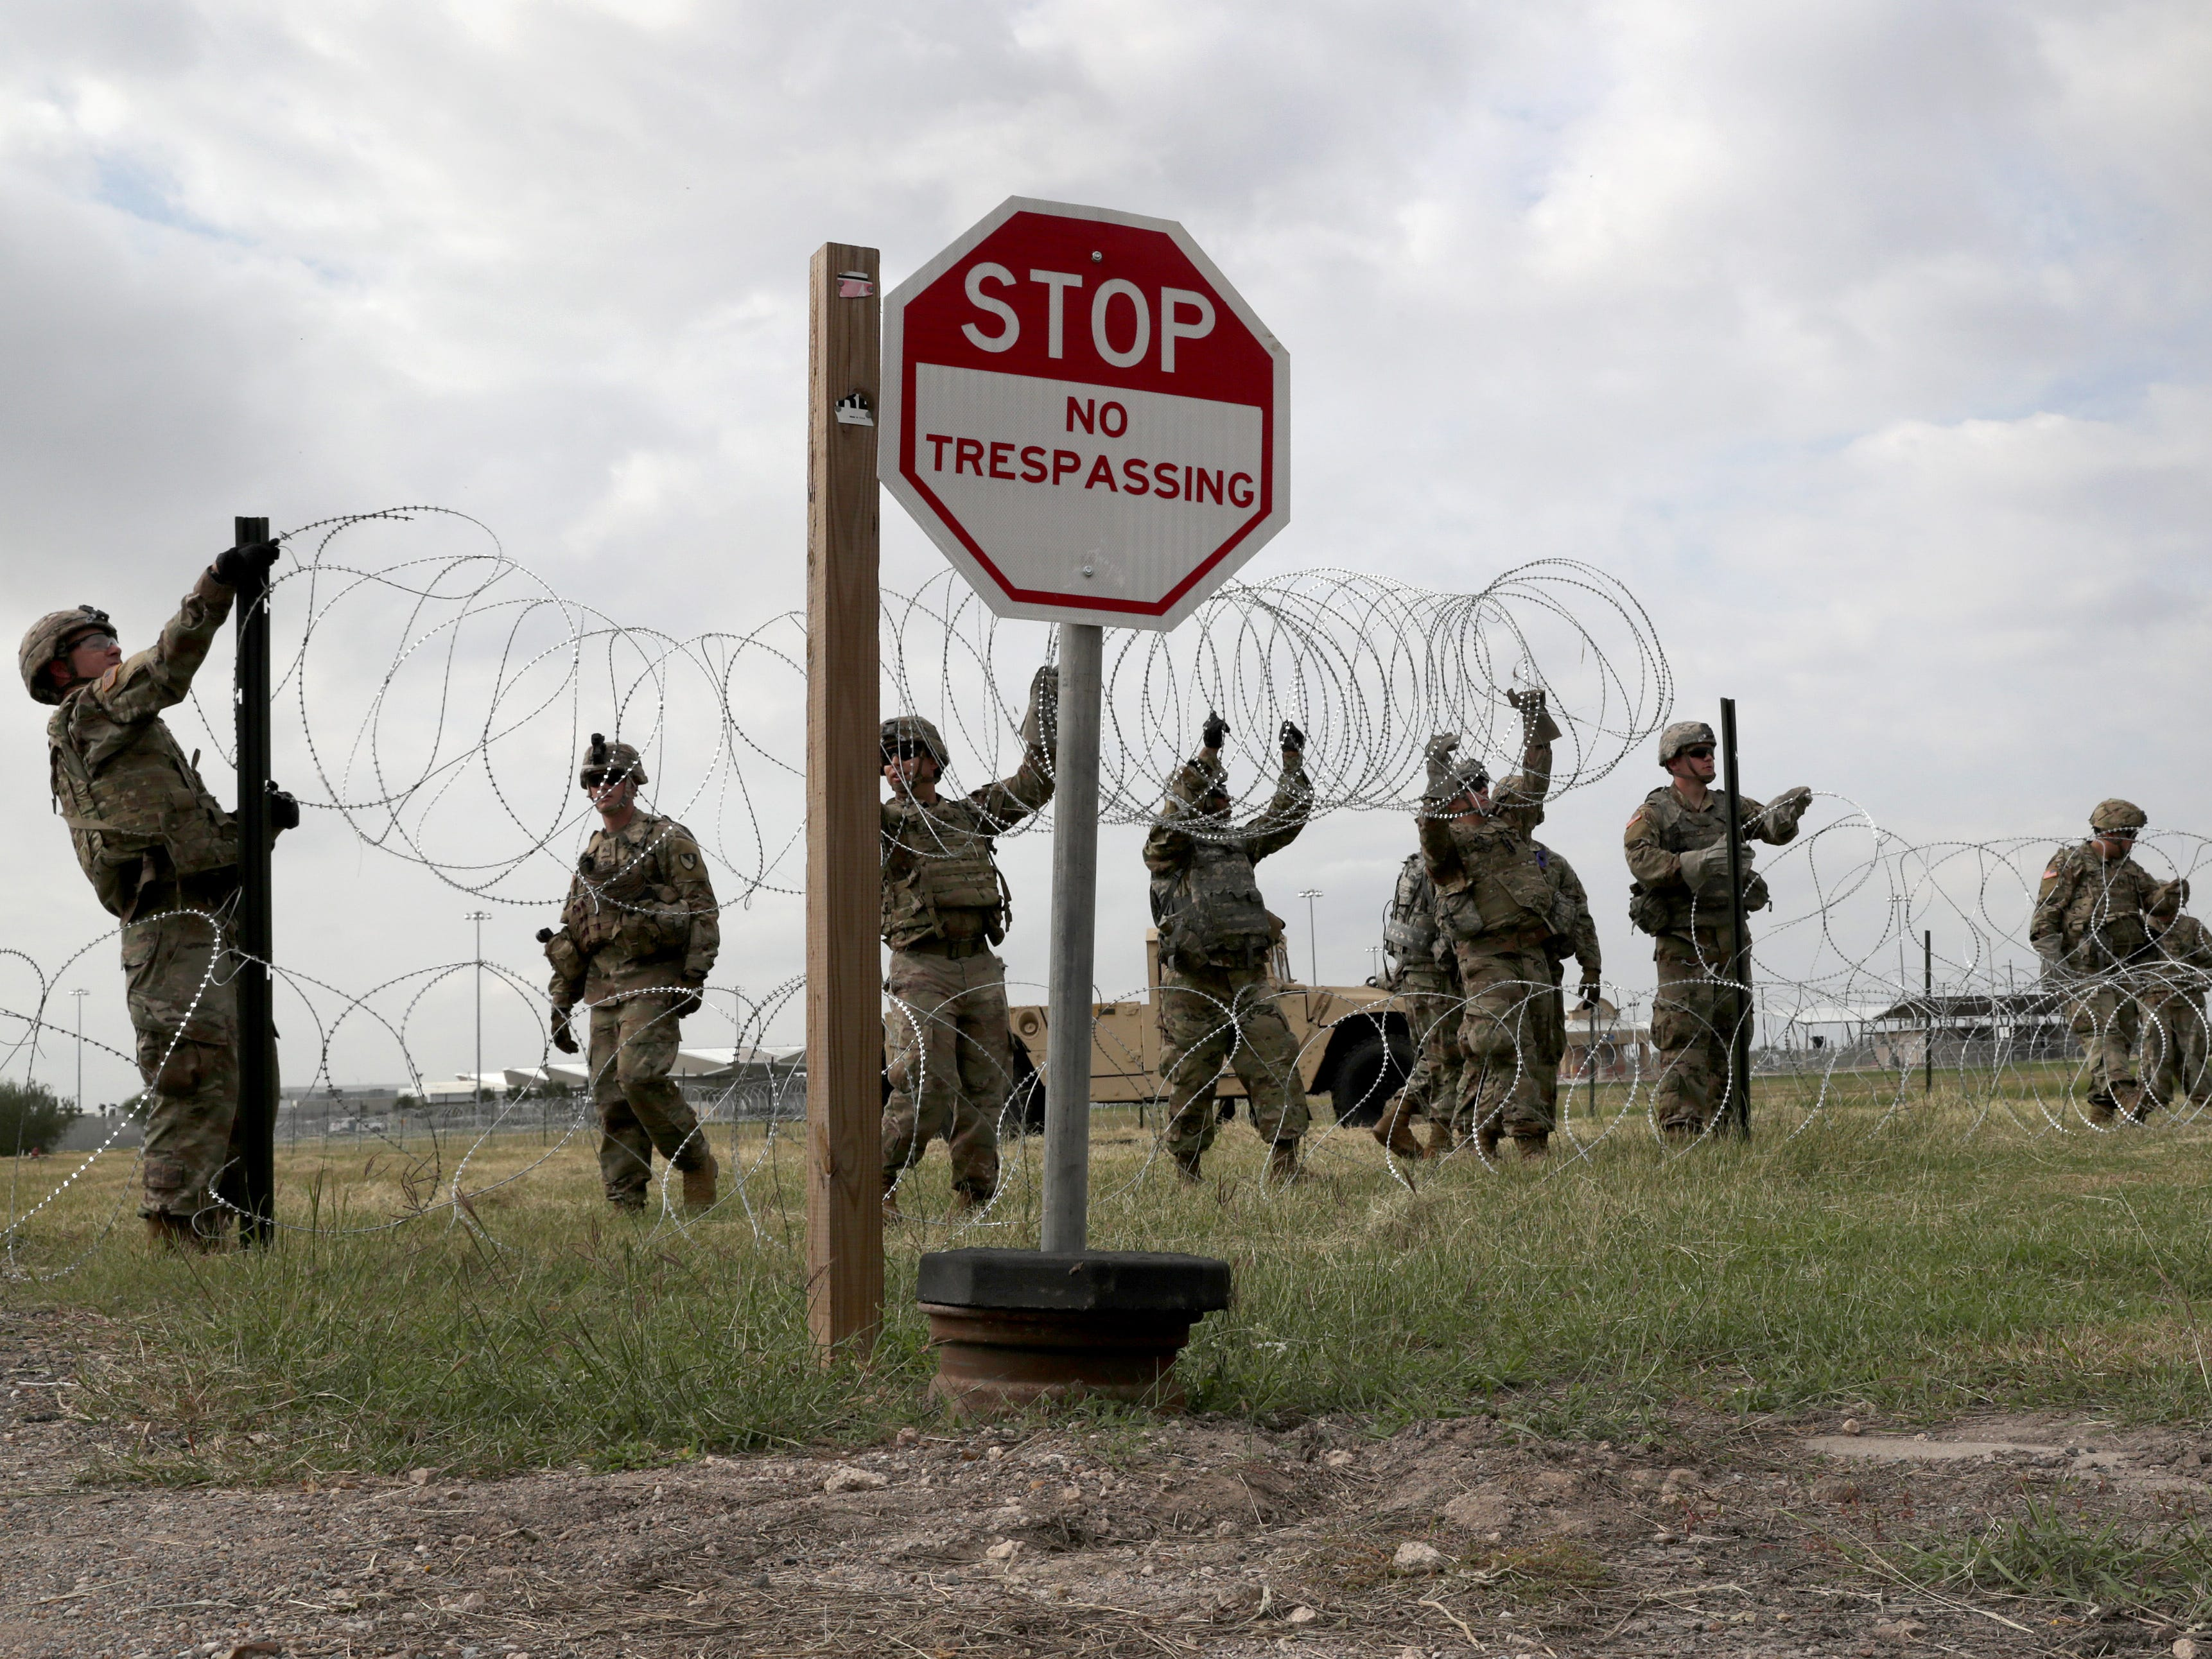 U.S. Army soldiers from Ft. Riley, Kansas string razor wire near the port of entry at the U.S.-Mexico border on Nov. 4, 2018 in Donna, Texas. President Trump ordered the troops to border areas ahead of the possible arrival of an immigrant caravan in upcoming weeks.